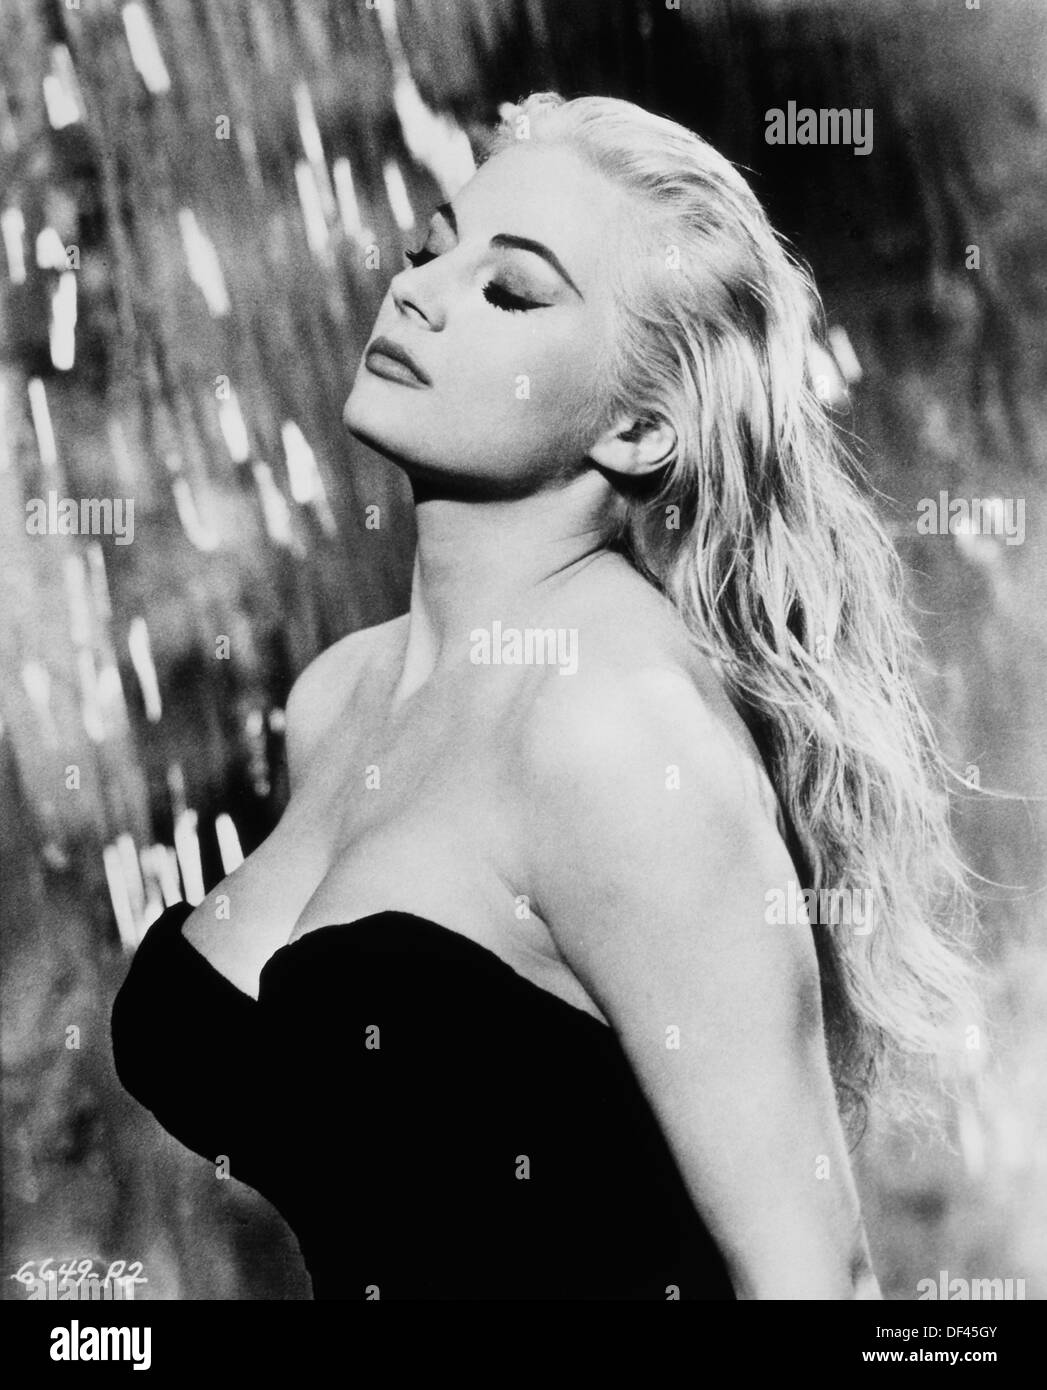 Anita Ekberg, on-set of the Film, 'La Dolce Vita', Riama Film, Pathe Consortium Cinema, 1960 - Stock Image